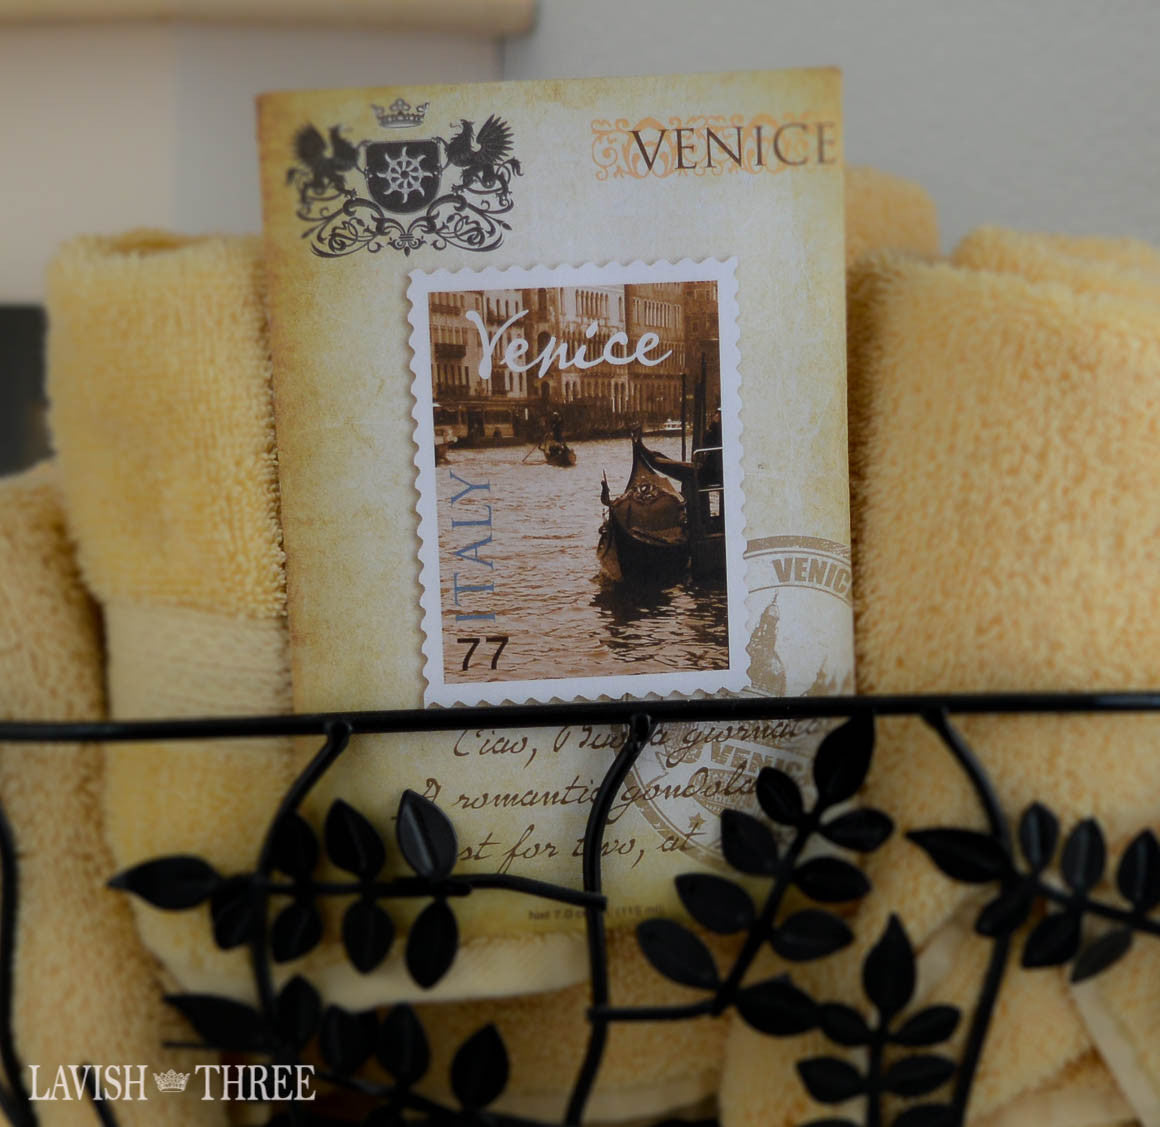 Sachet scents in apple spice cinnamon, venice, pear